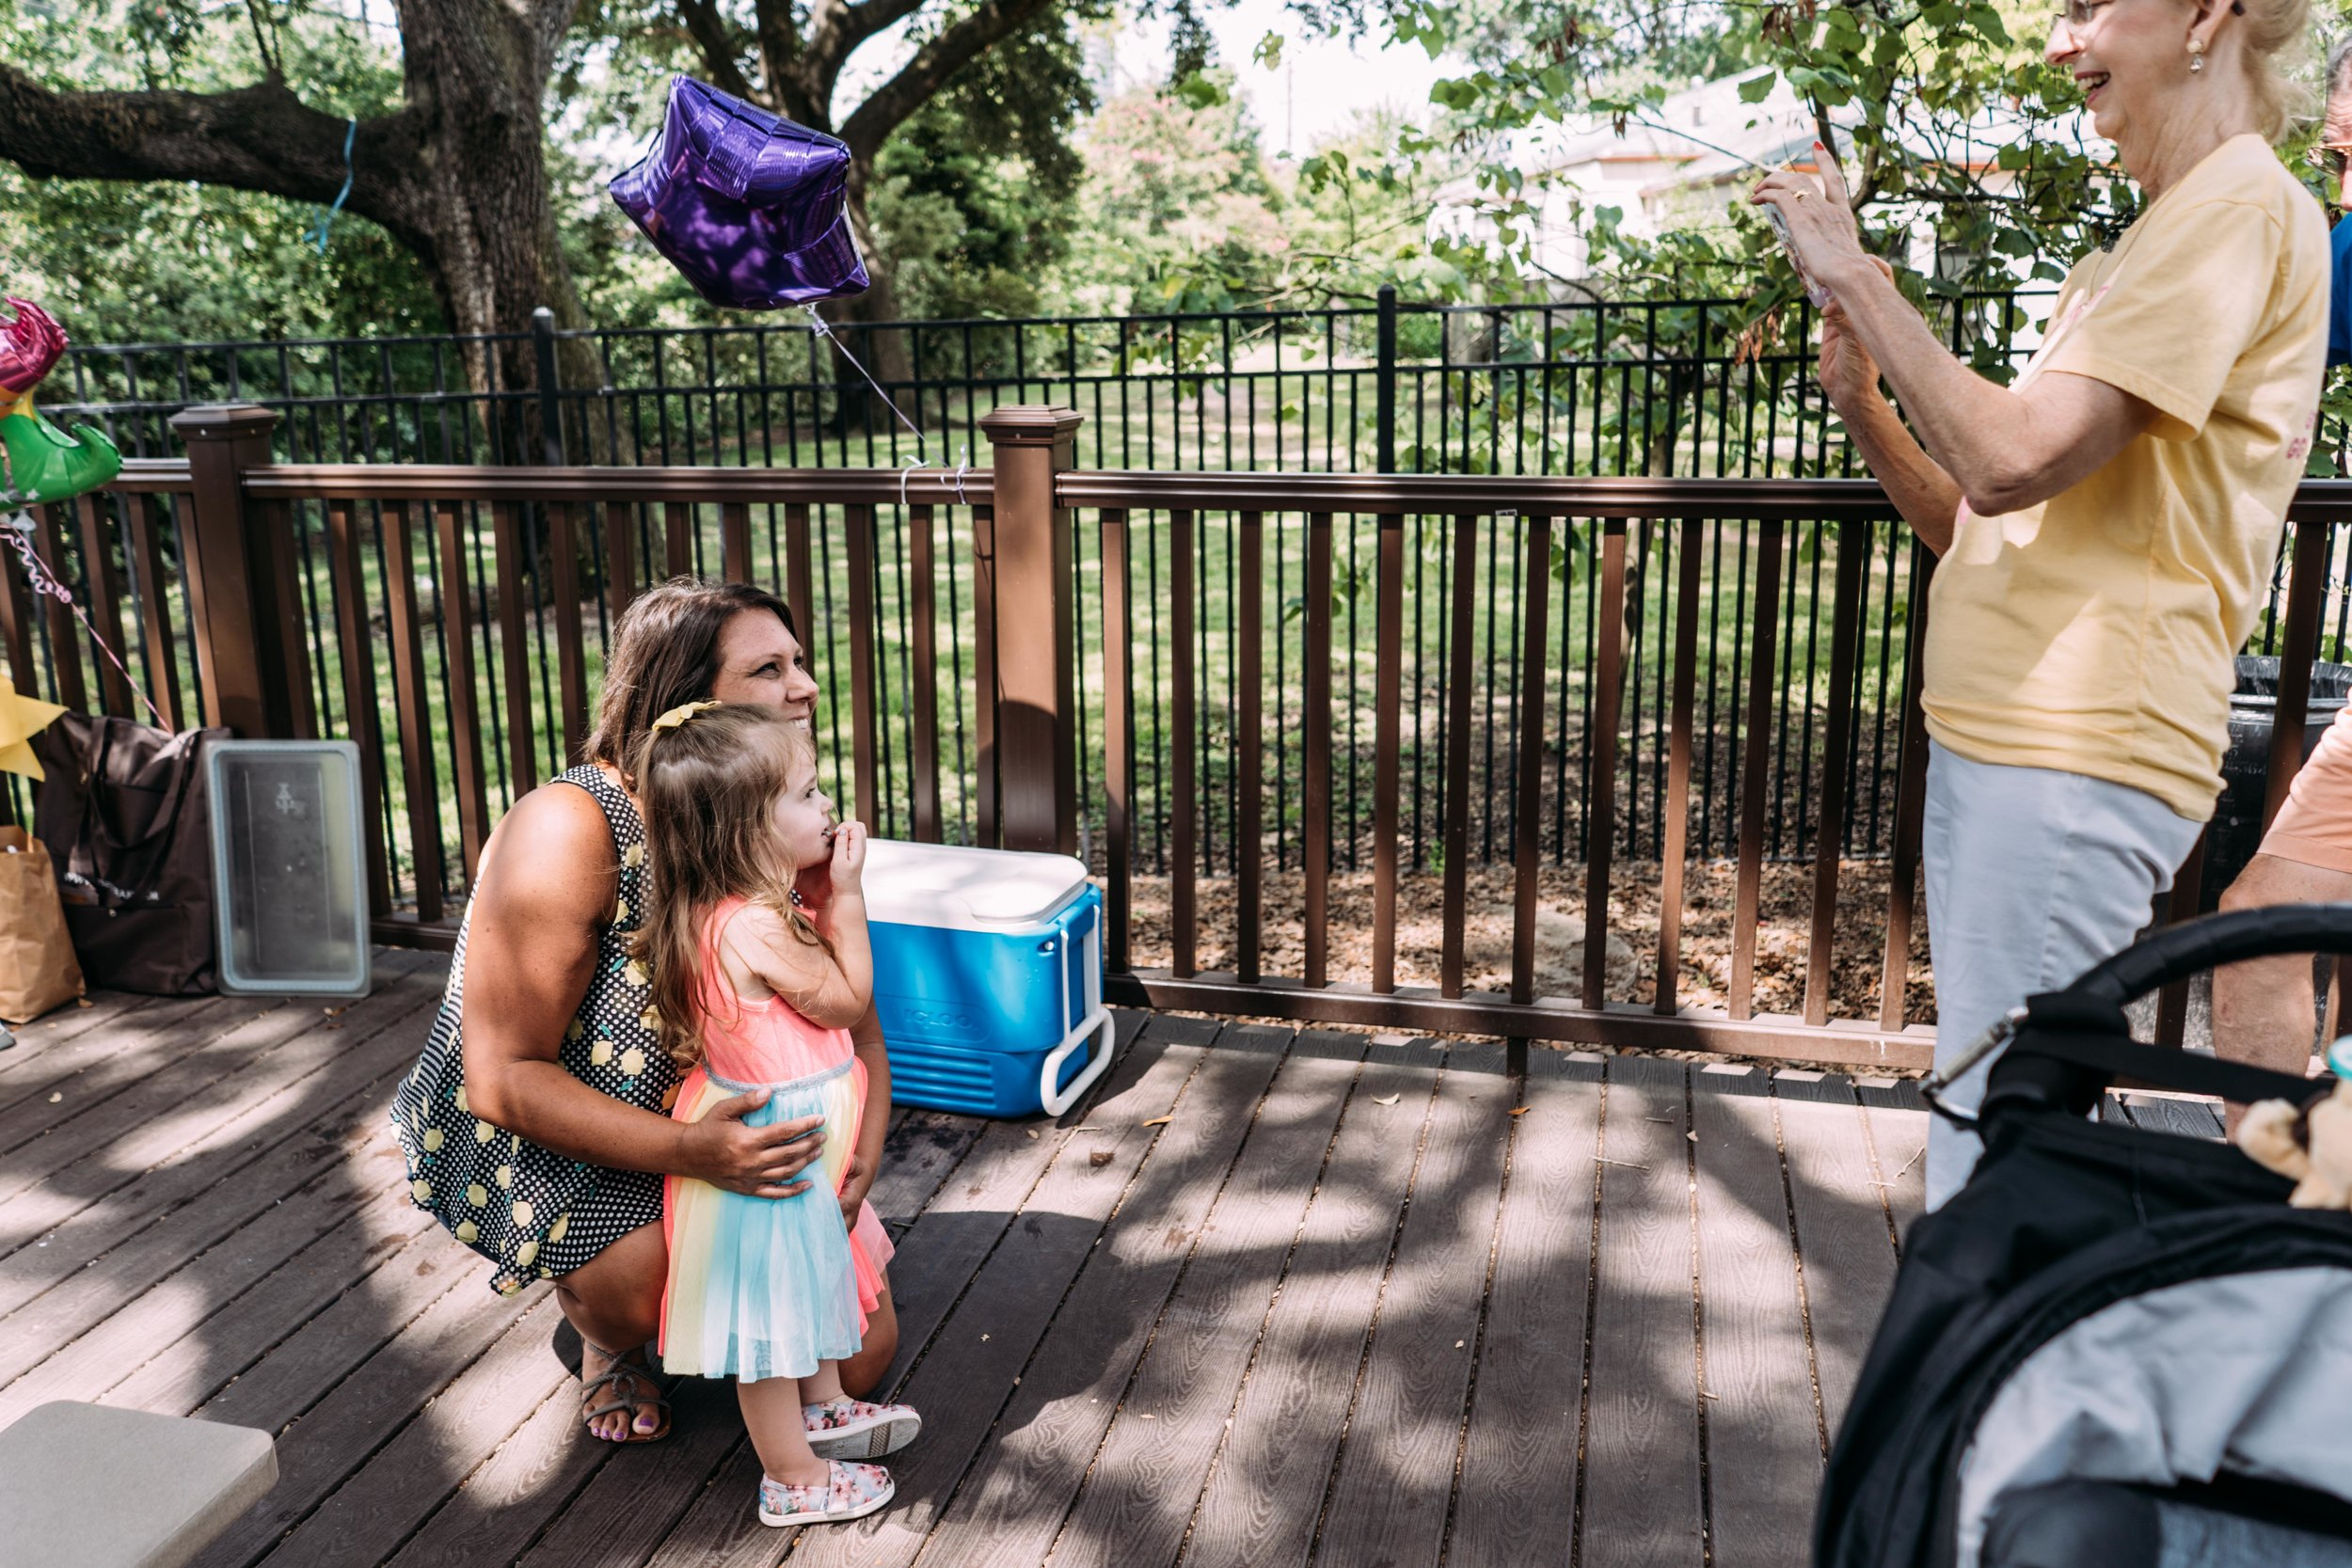 birthday party at the park-37.jpg